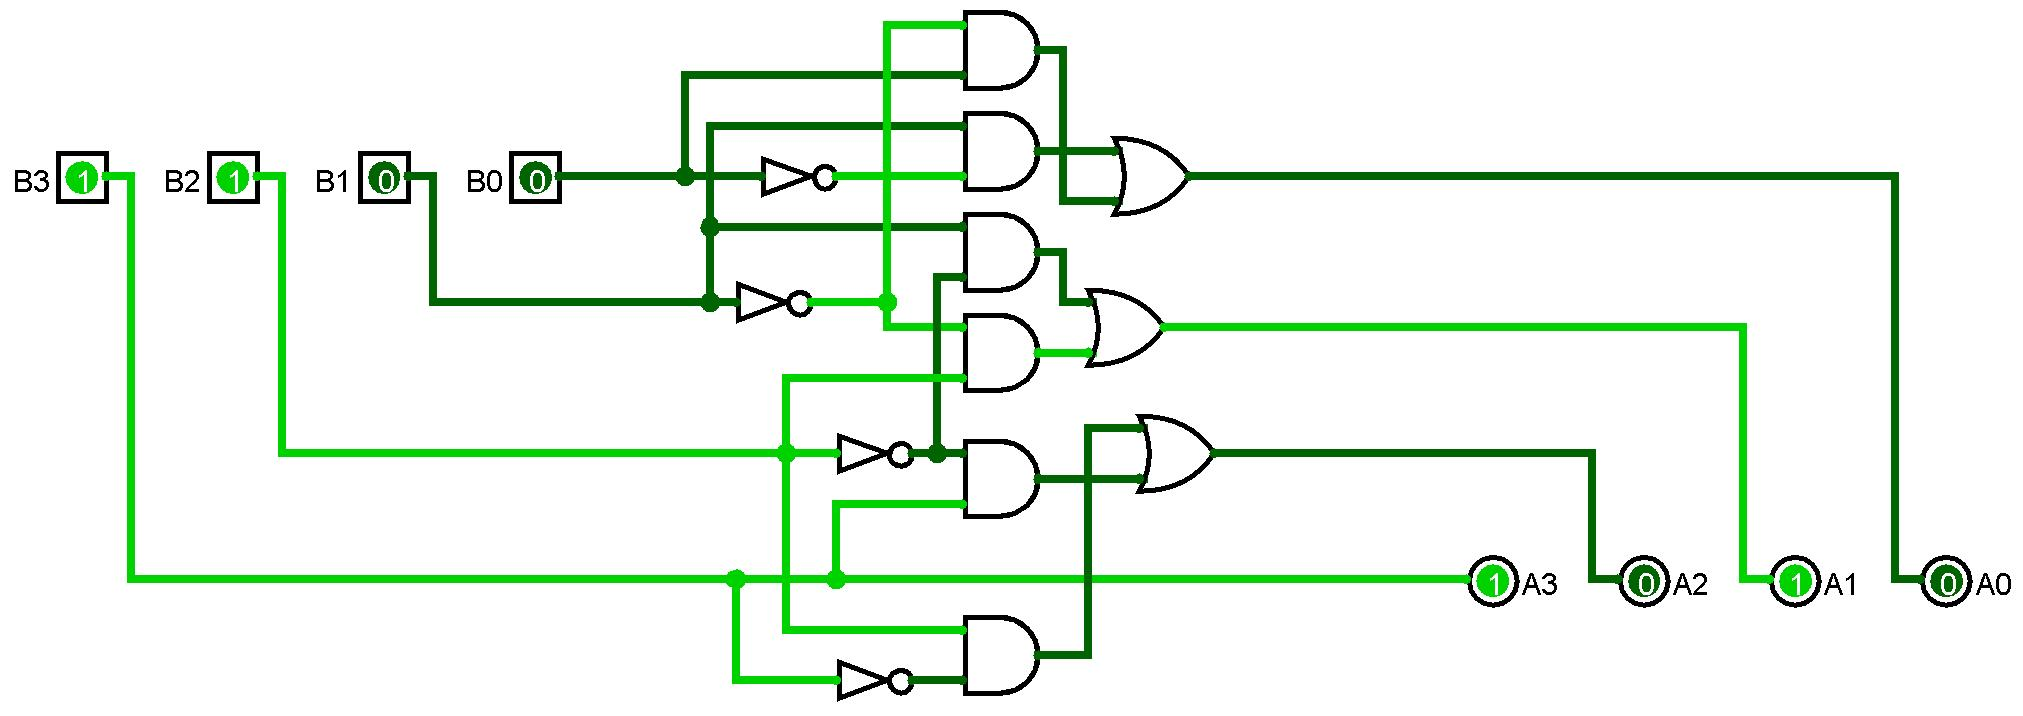 Logic Diagram 4 Bit Multiplier Auto Electrical Wiring Digital Binary To Gray Code Converter